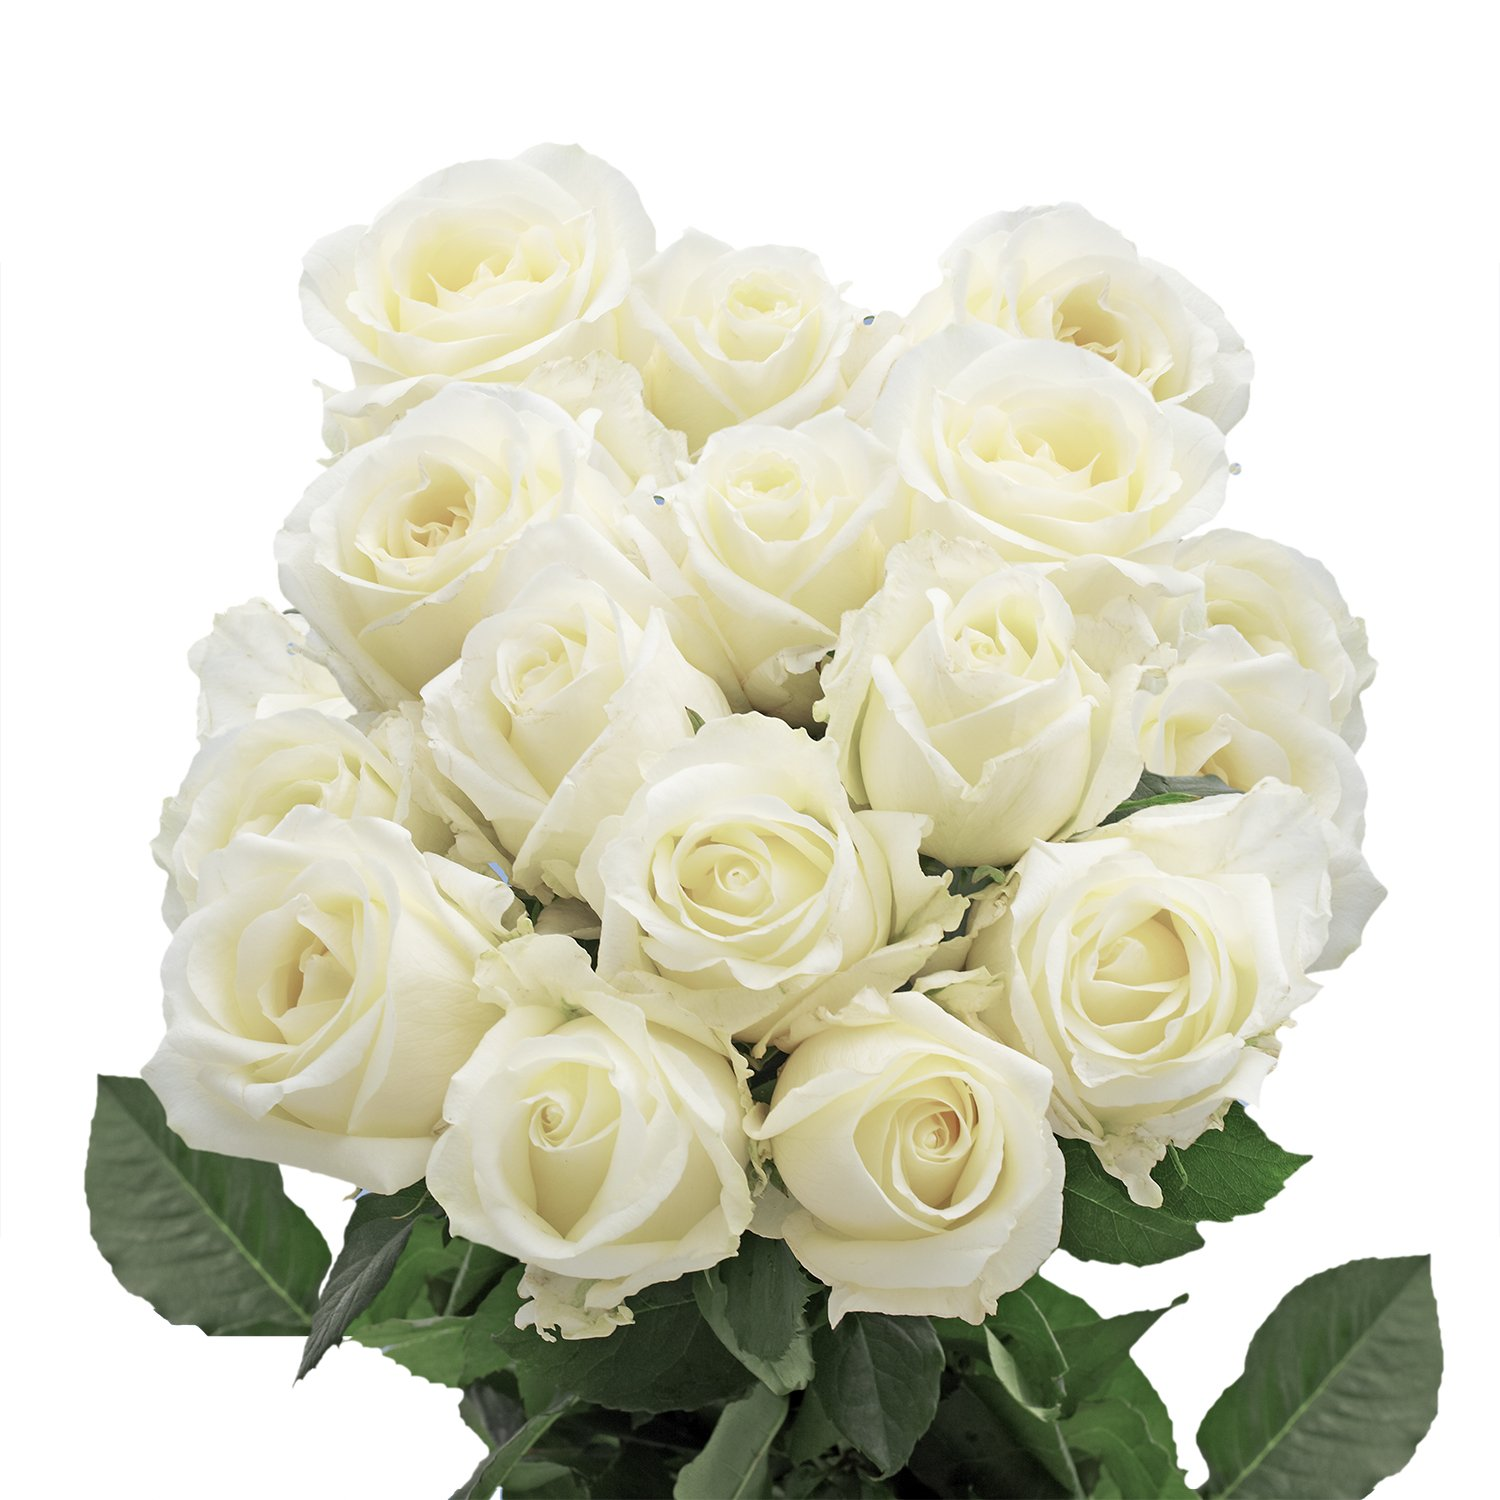 GlobalRose 100 White Roses- Fresh Cut Flower Delivery